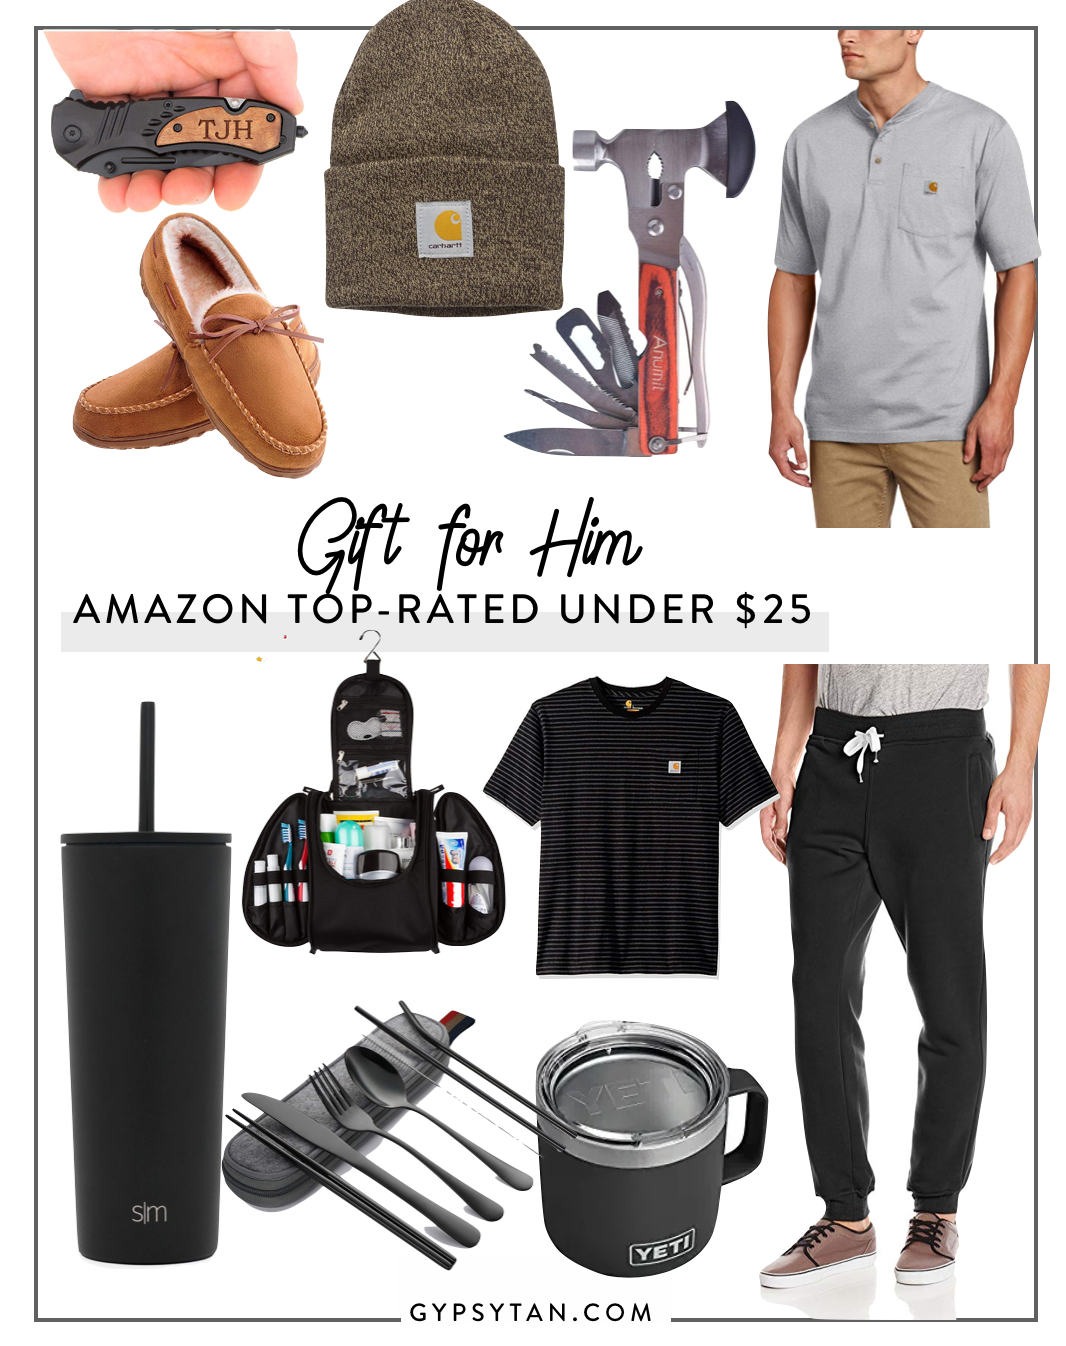 59 Gifts for the Men In Your Life